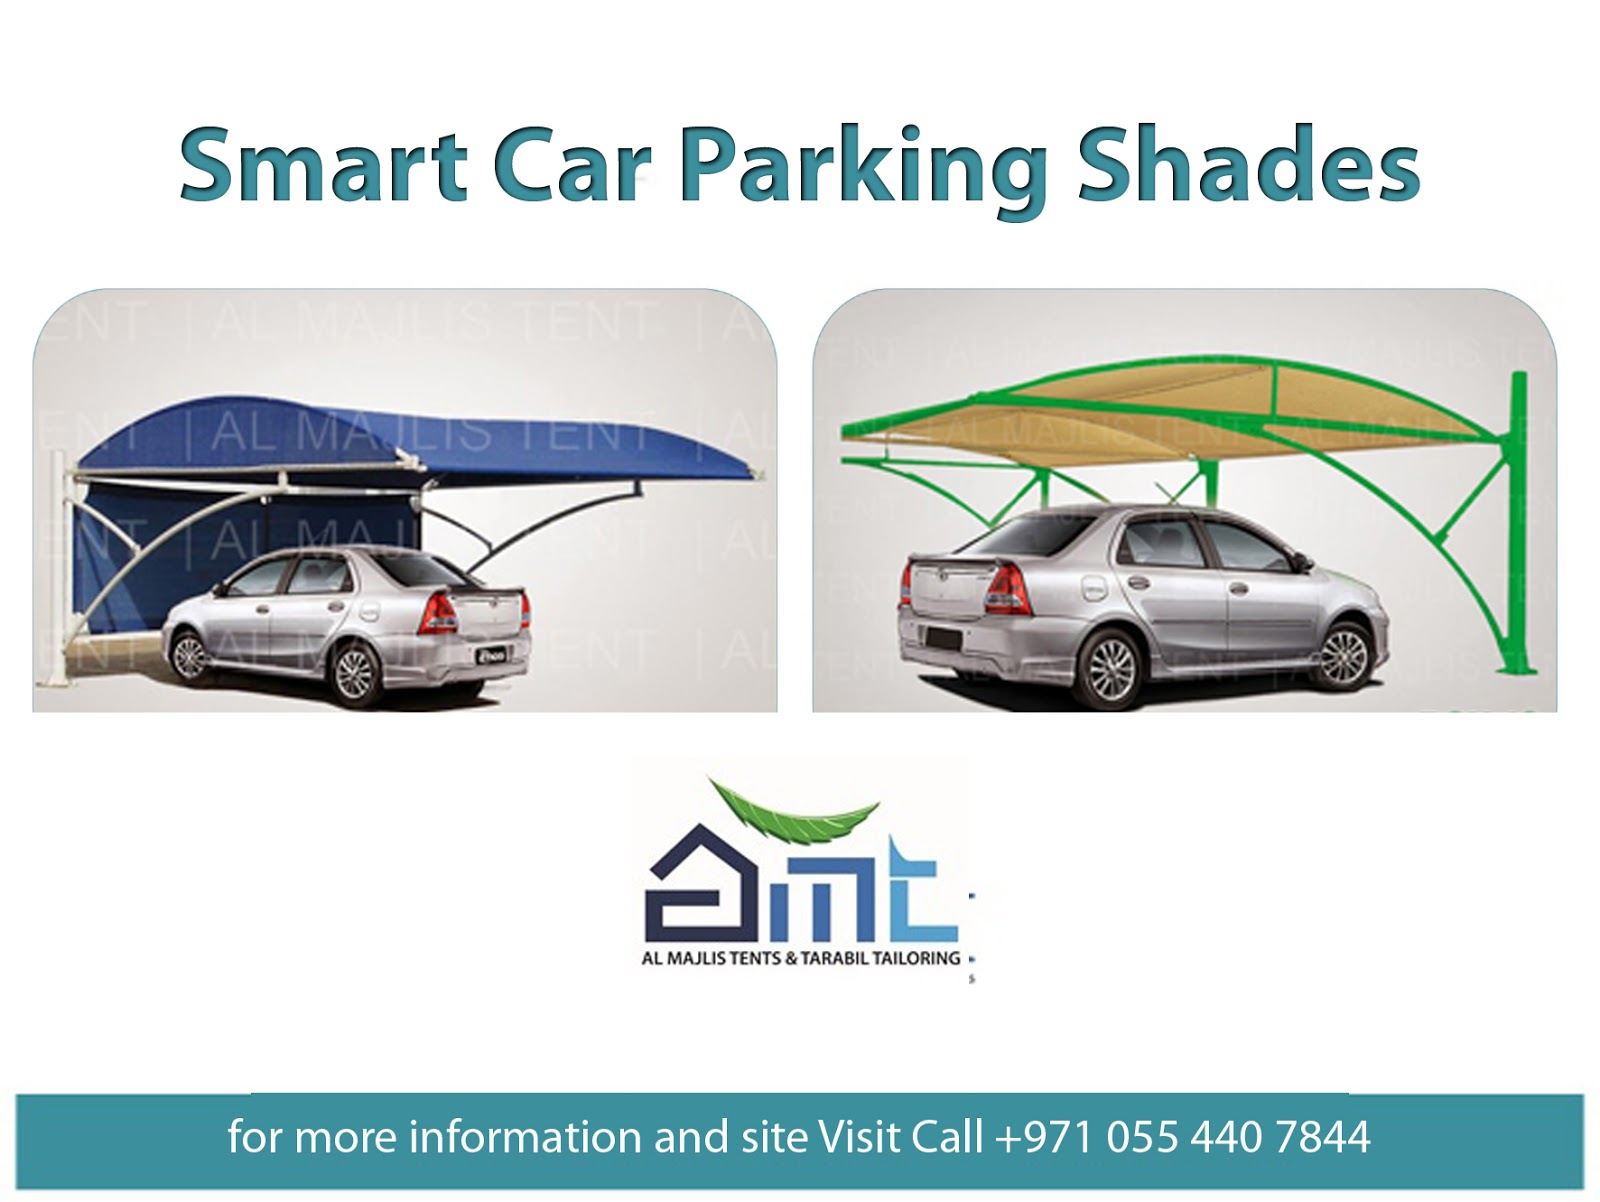 Al Majlis Tent Opt to congruence Car Parking Shade of superior quality with good quality material for strength and durability and with the fabric of special ...  sc 1 st  Modern Car Parking Shades | Smart Car Parking Shades | PVC Car ... & Smart Car parking Shades Ideas Uae PVC Car Shades | Modern Car ...